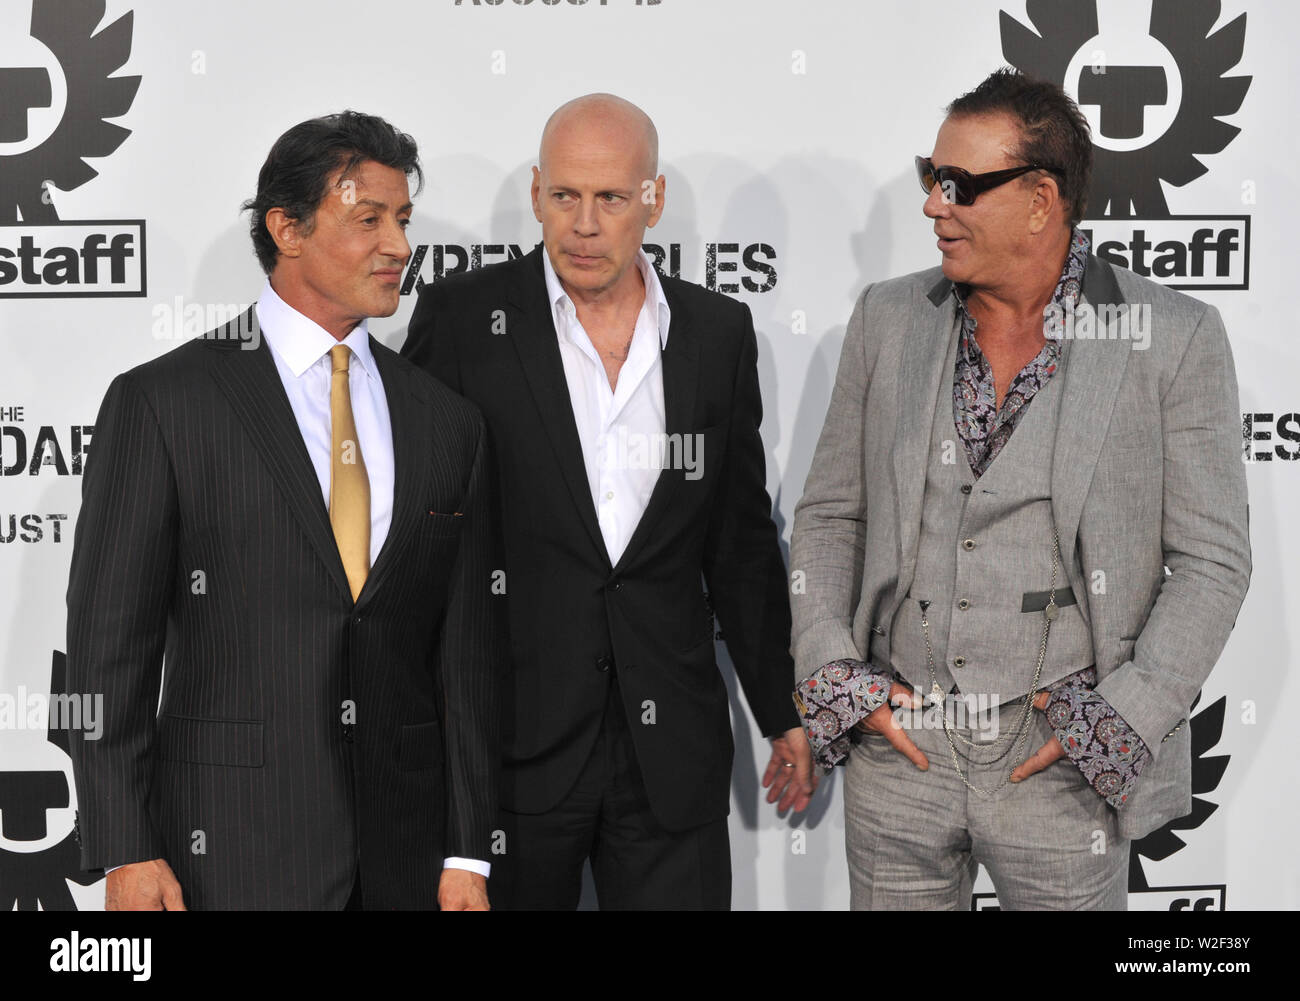 LOS ANGELES, CA. August 03, 2010: Sylvester Stallone (left), Bruce Willis & Mickey Rourke at the world premiere of their new movie 'The Expendables' at Grauman's Chinese Theatre, Hollywood. © 2010 Paul Smith / Featureflash - Stock Image